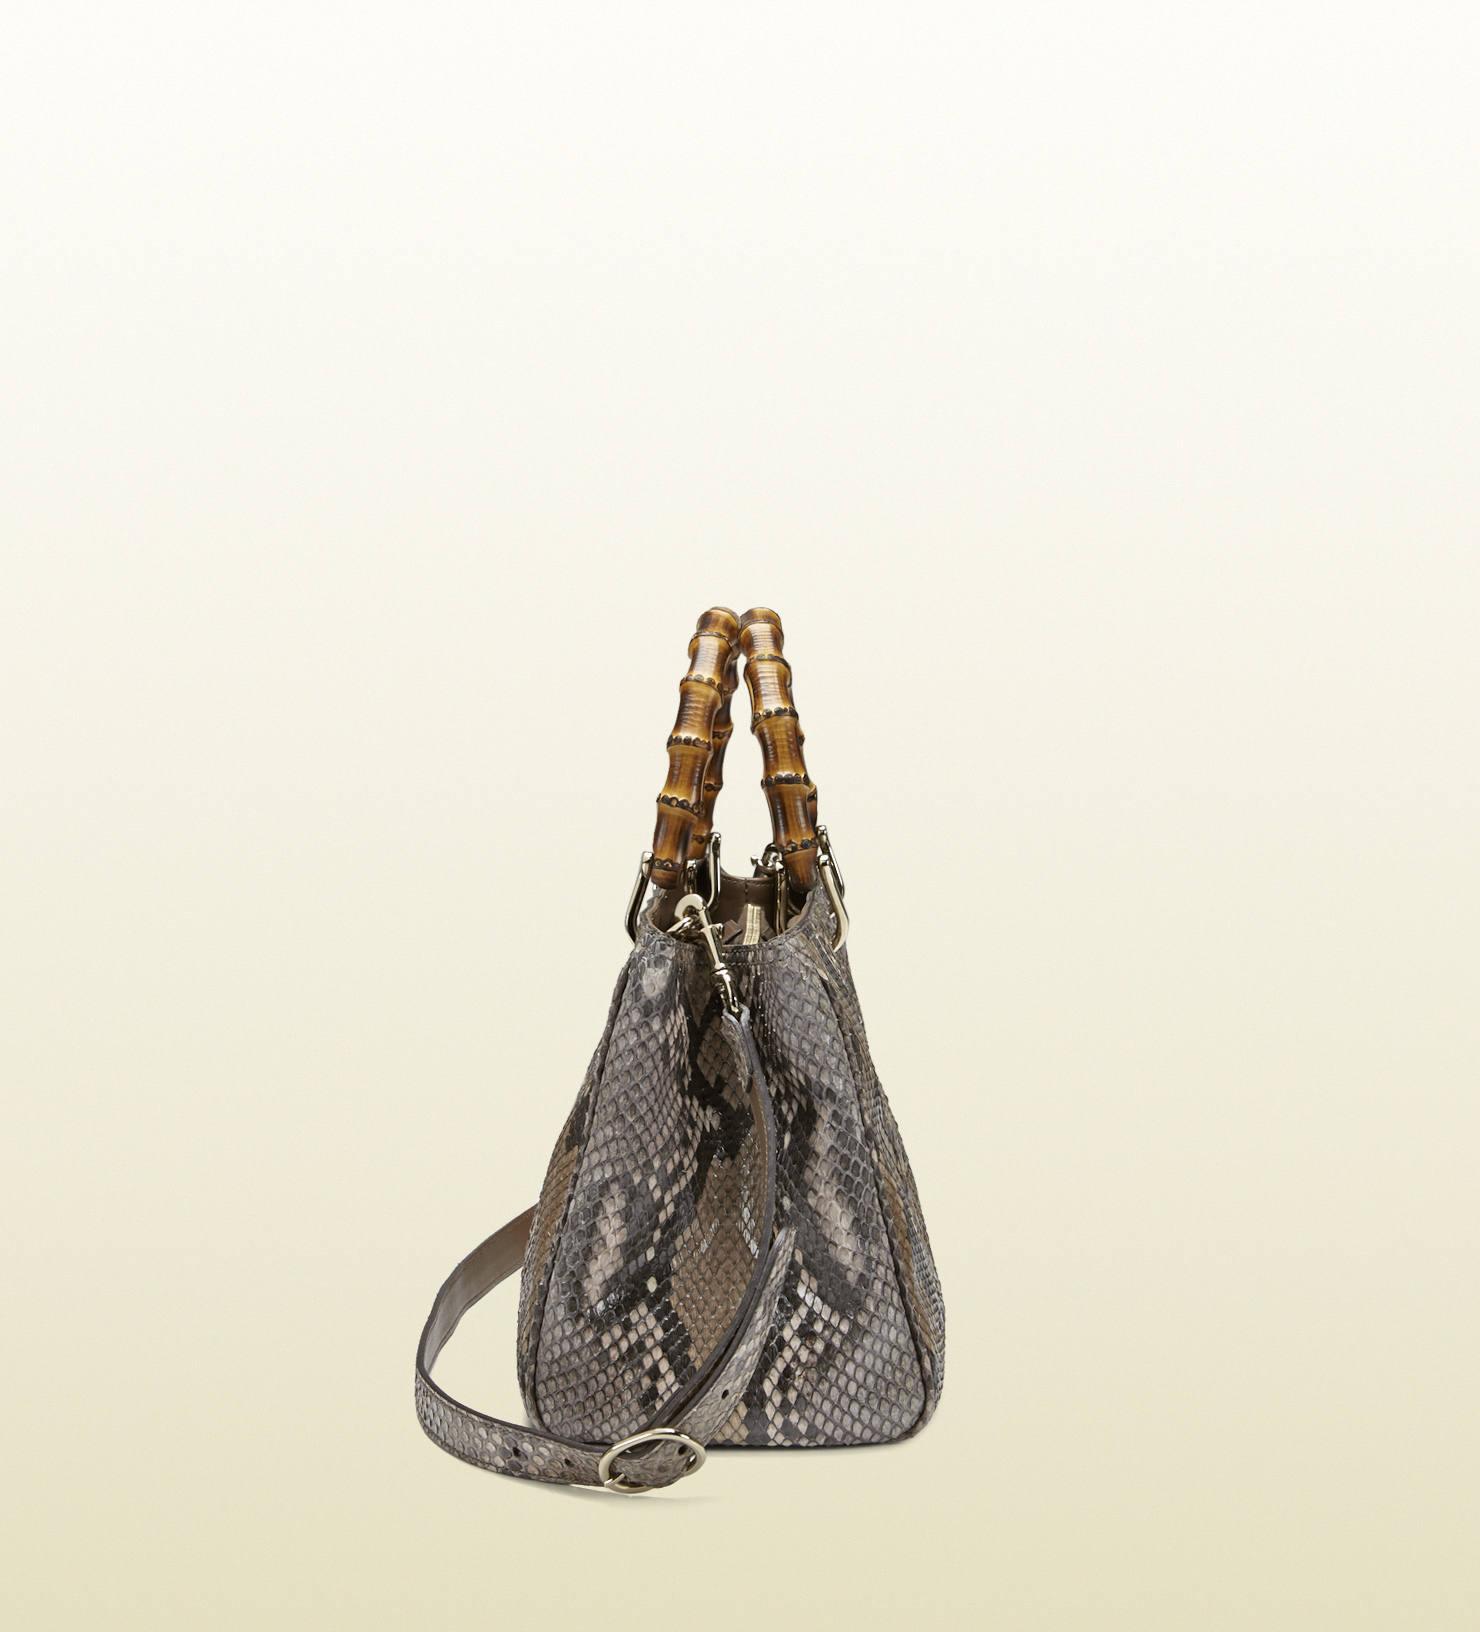 ef3b2662975b49 Gucci Bamboo Shopper Python Tote in Brown - Lyst